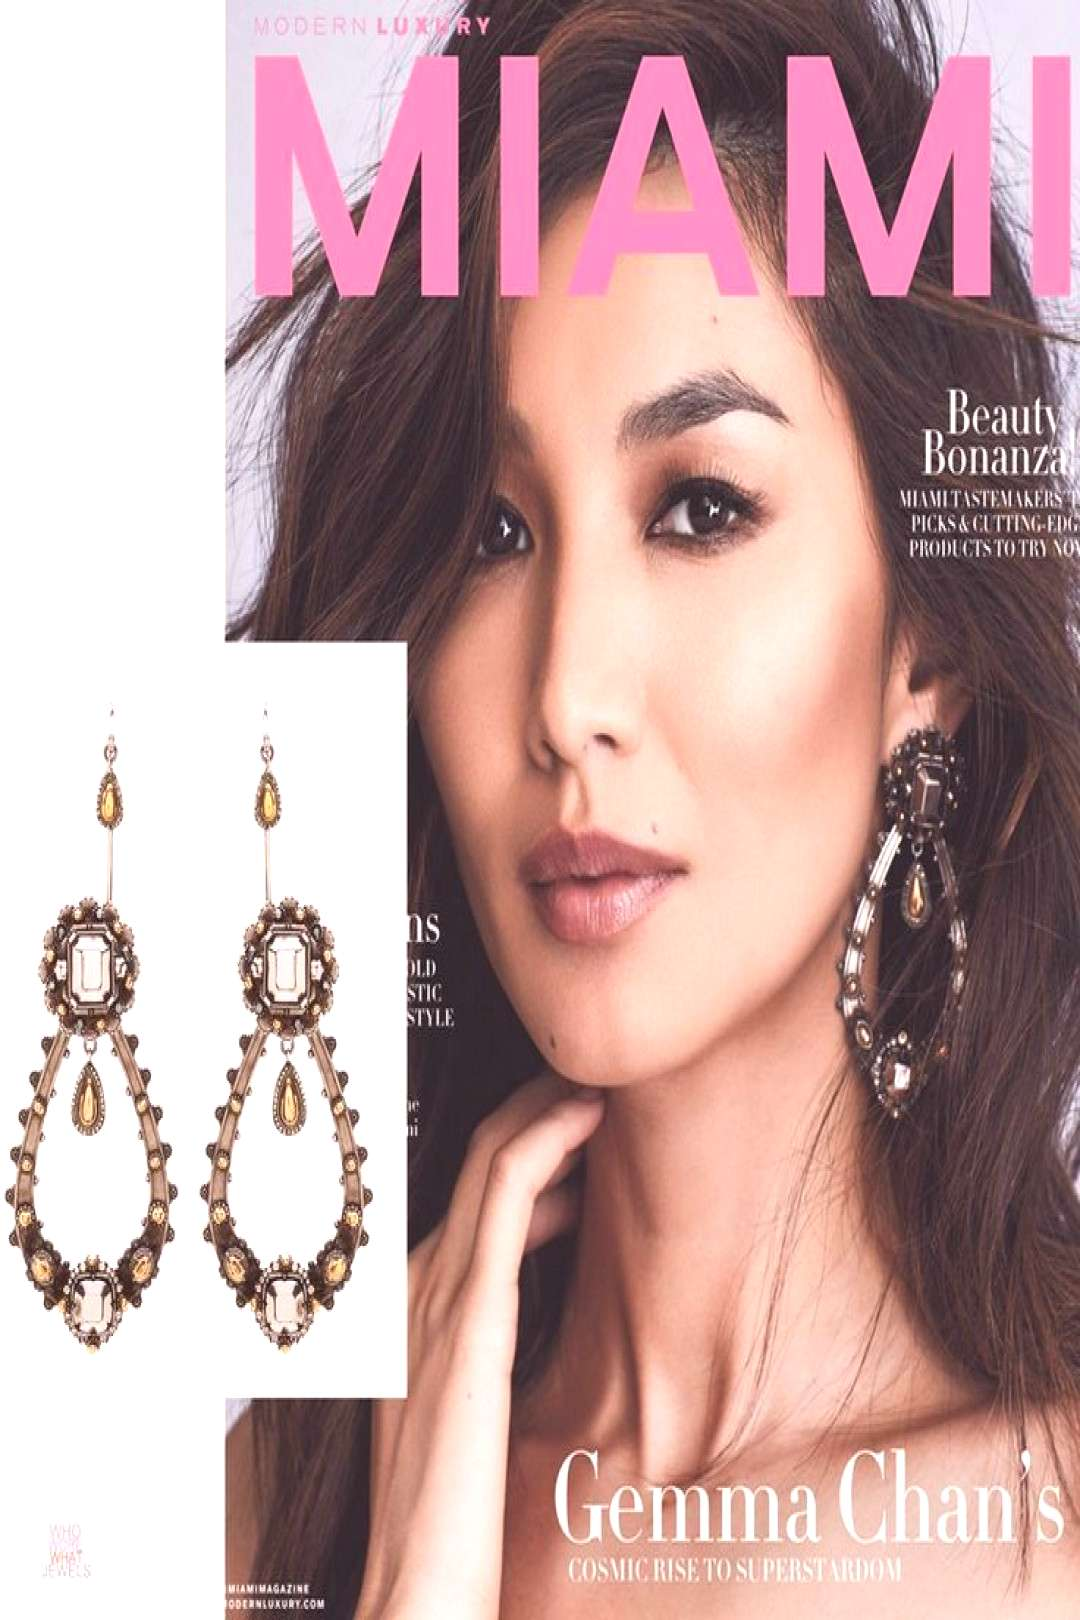 JEWELRY EDITORIAL Best Jewels From The February amp March Cover Issues - Celebrit... - JEWELRY EDIT